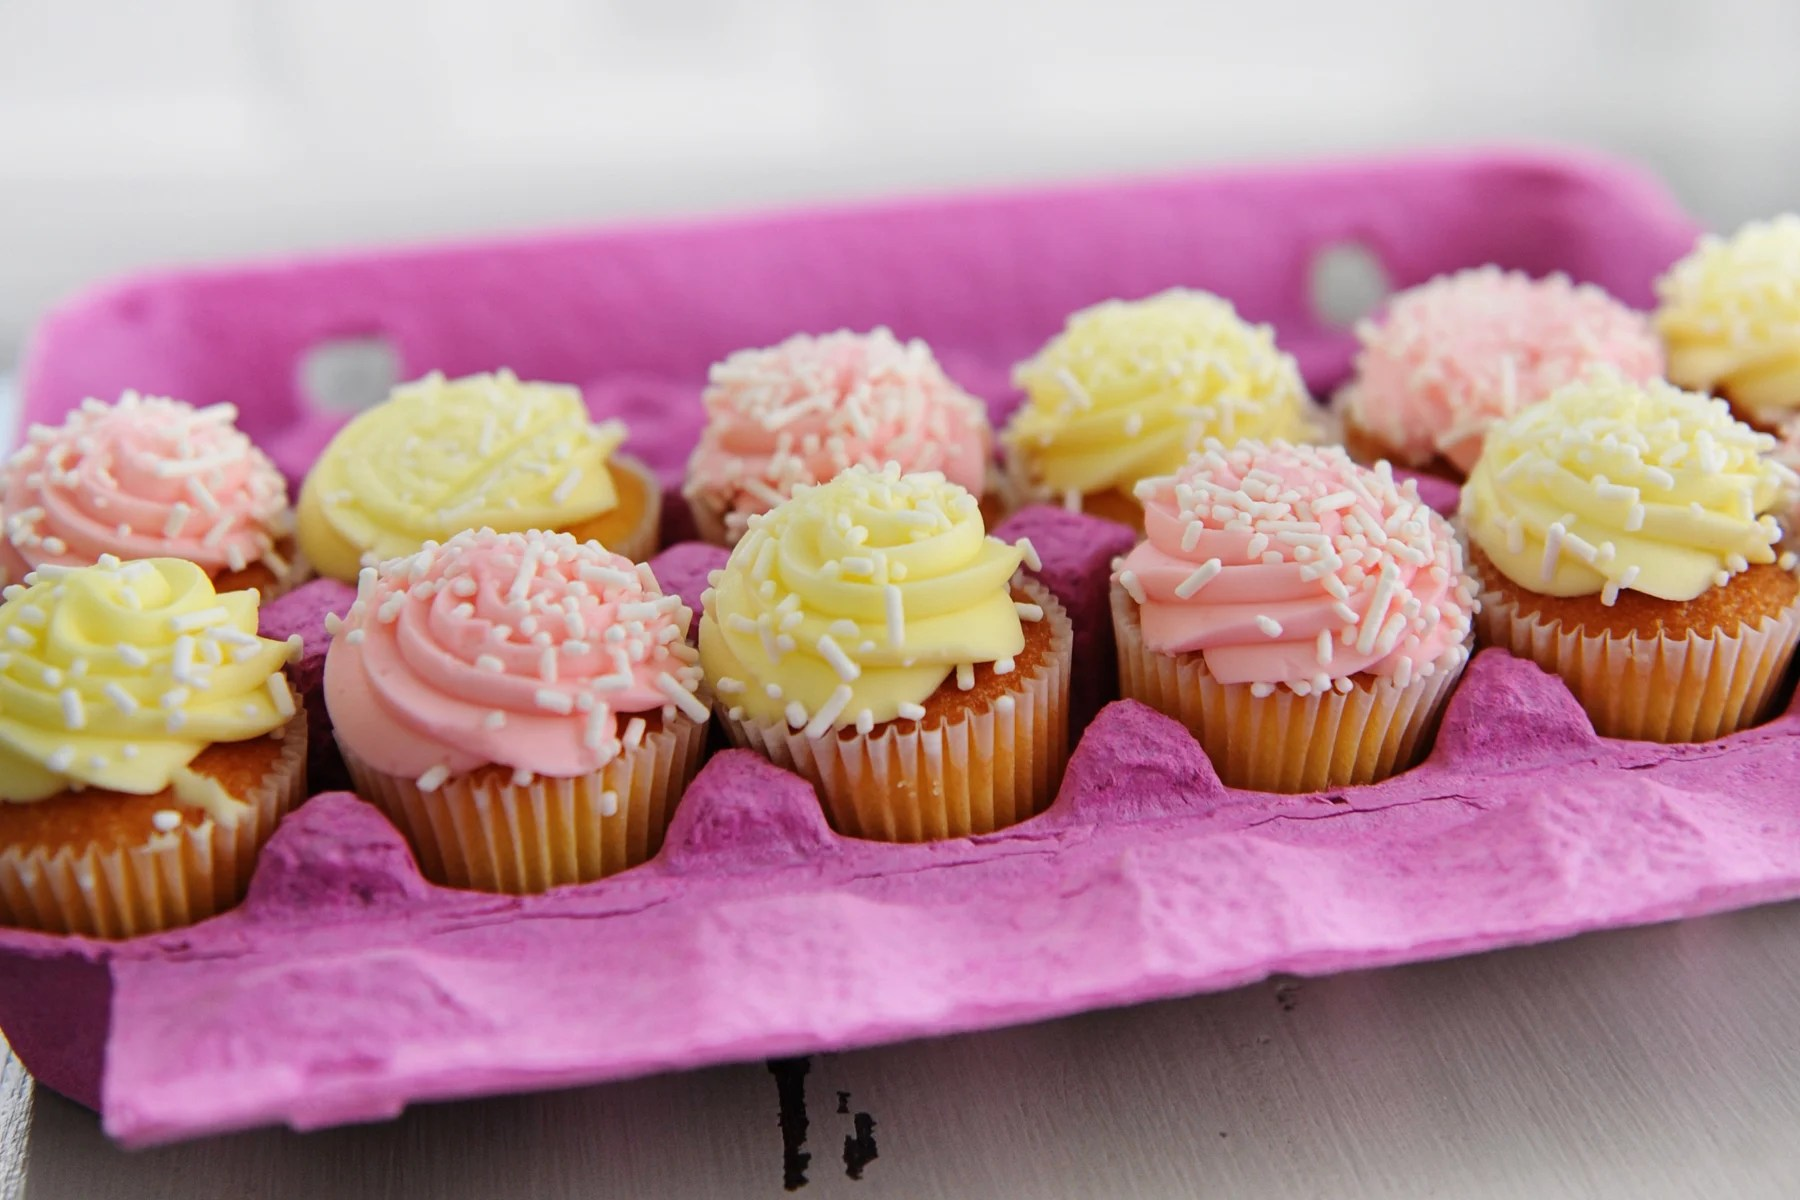 Getting Creative with Cupcakes: Cute Packaging and Gift Giving Idea